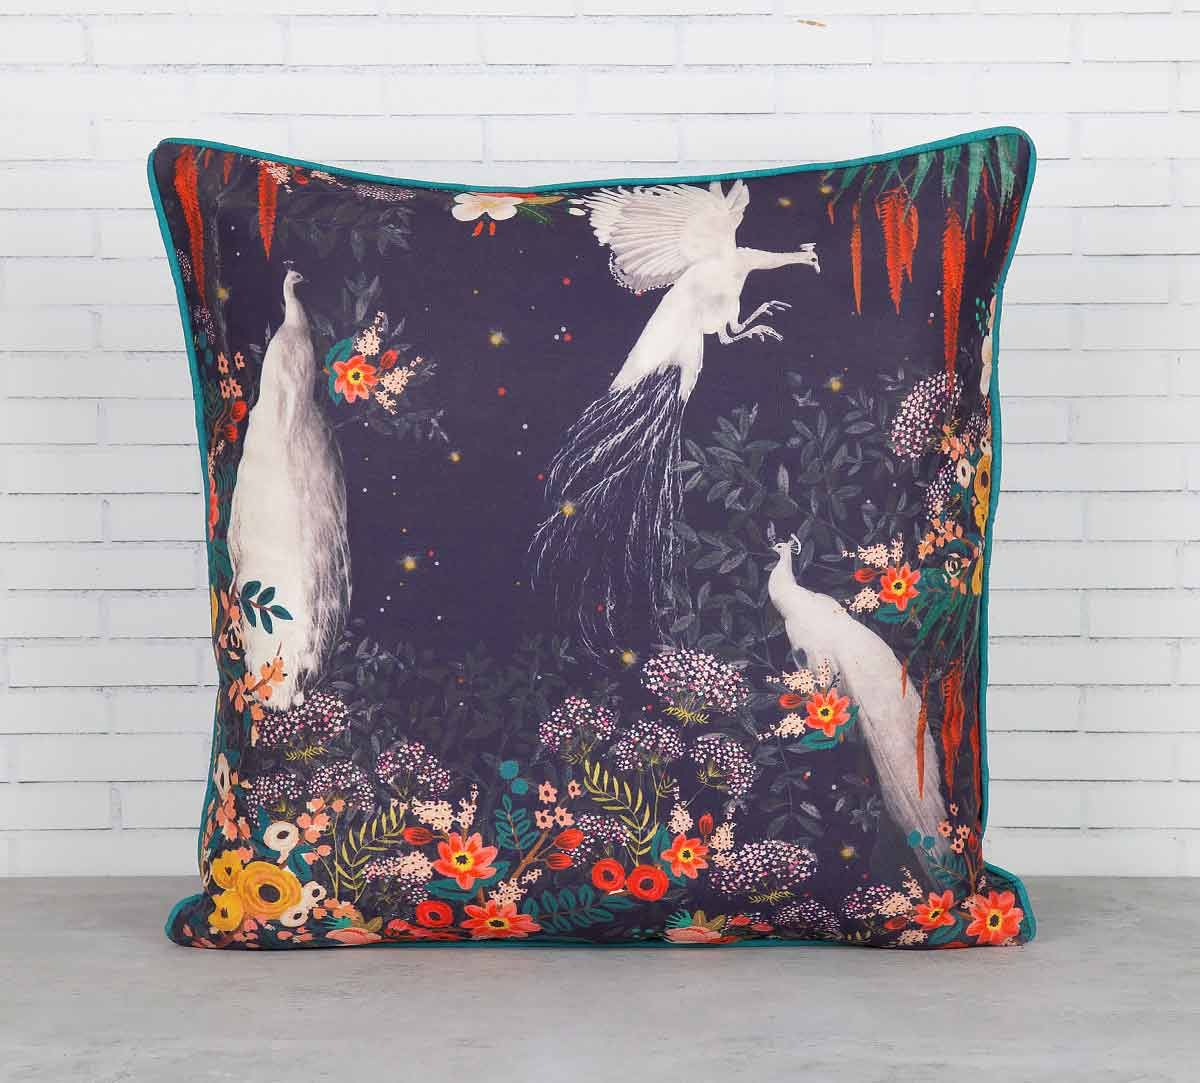 India Circus Vintage Spring Blended Taf Silk Cushion Cover